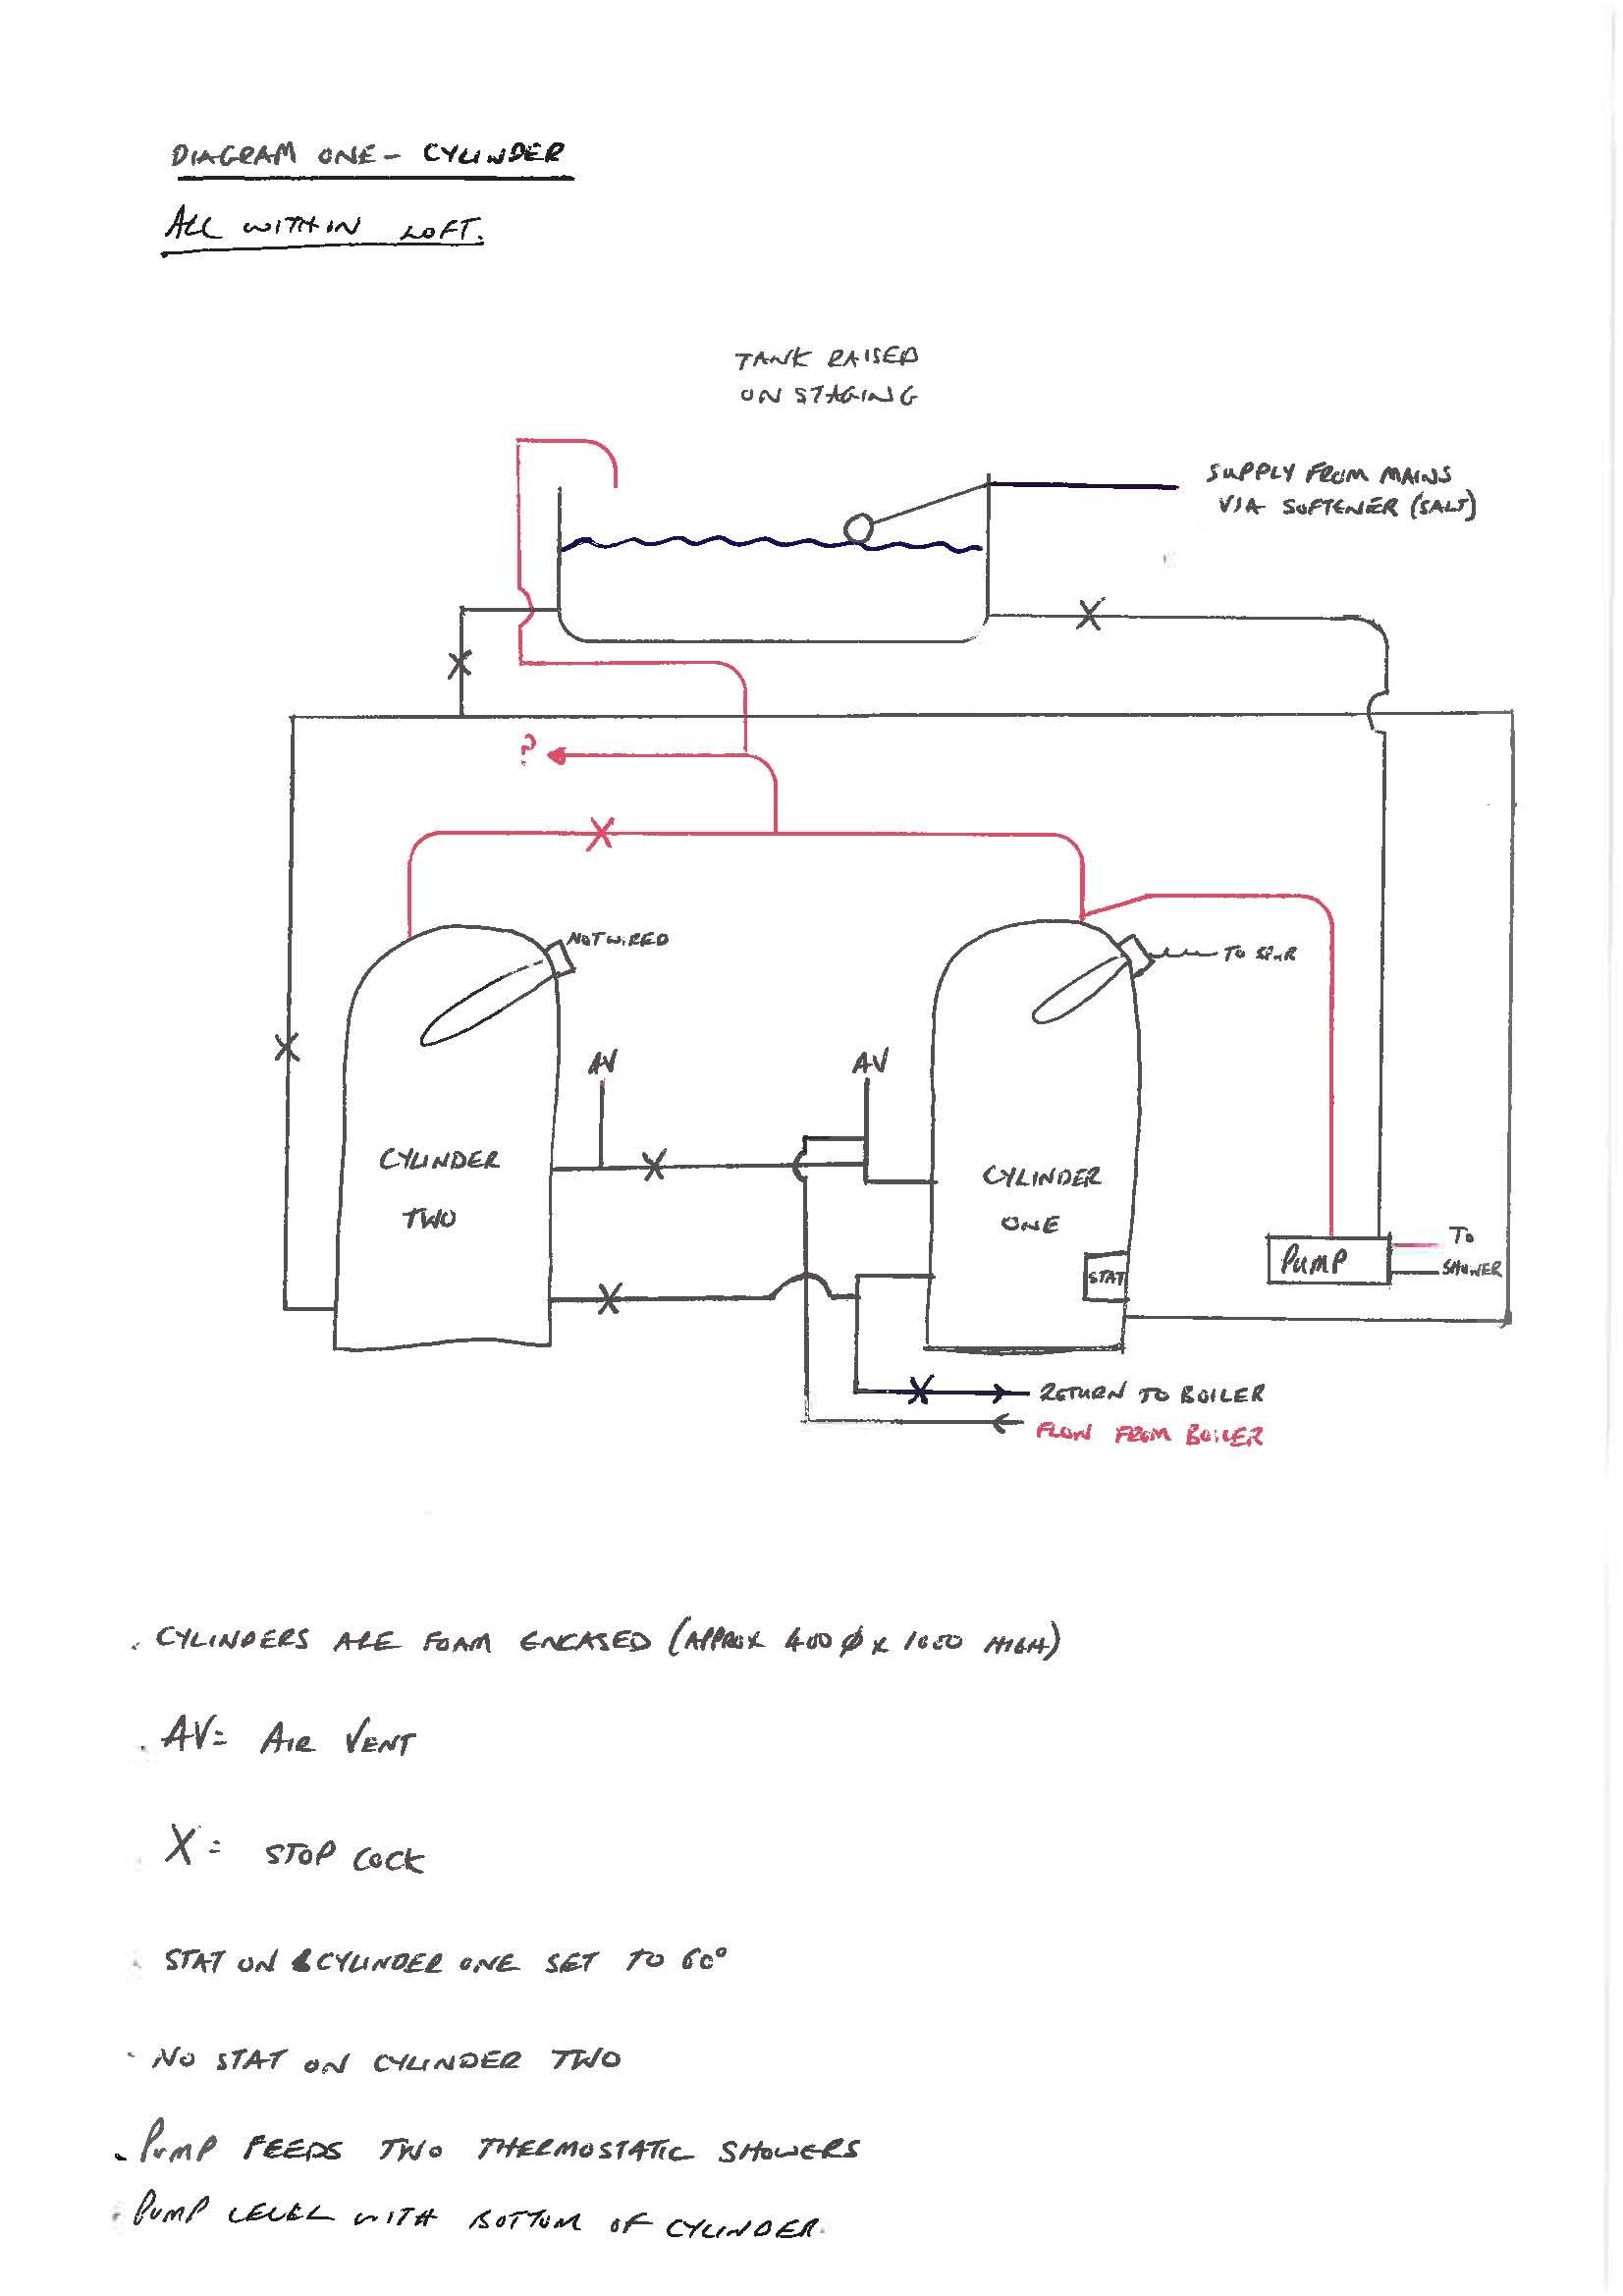 Megaflo Unvented Indirect Cylinder Wiring Diagram : Megaflo unvented indirect cylinder wiring diagram gallery